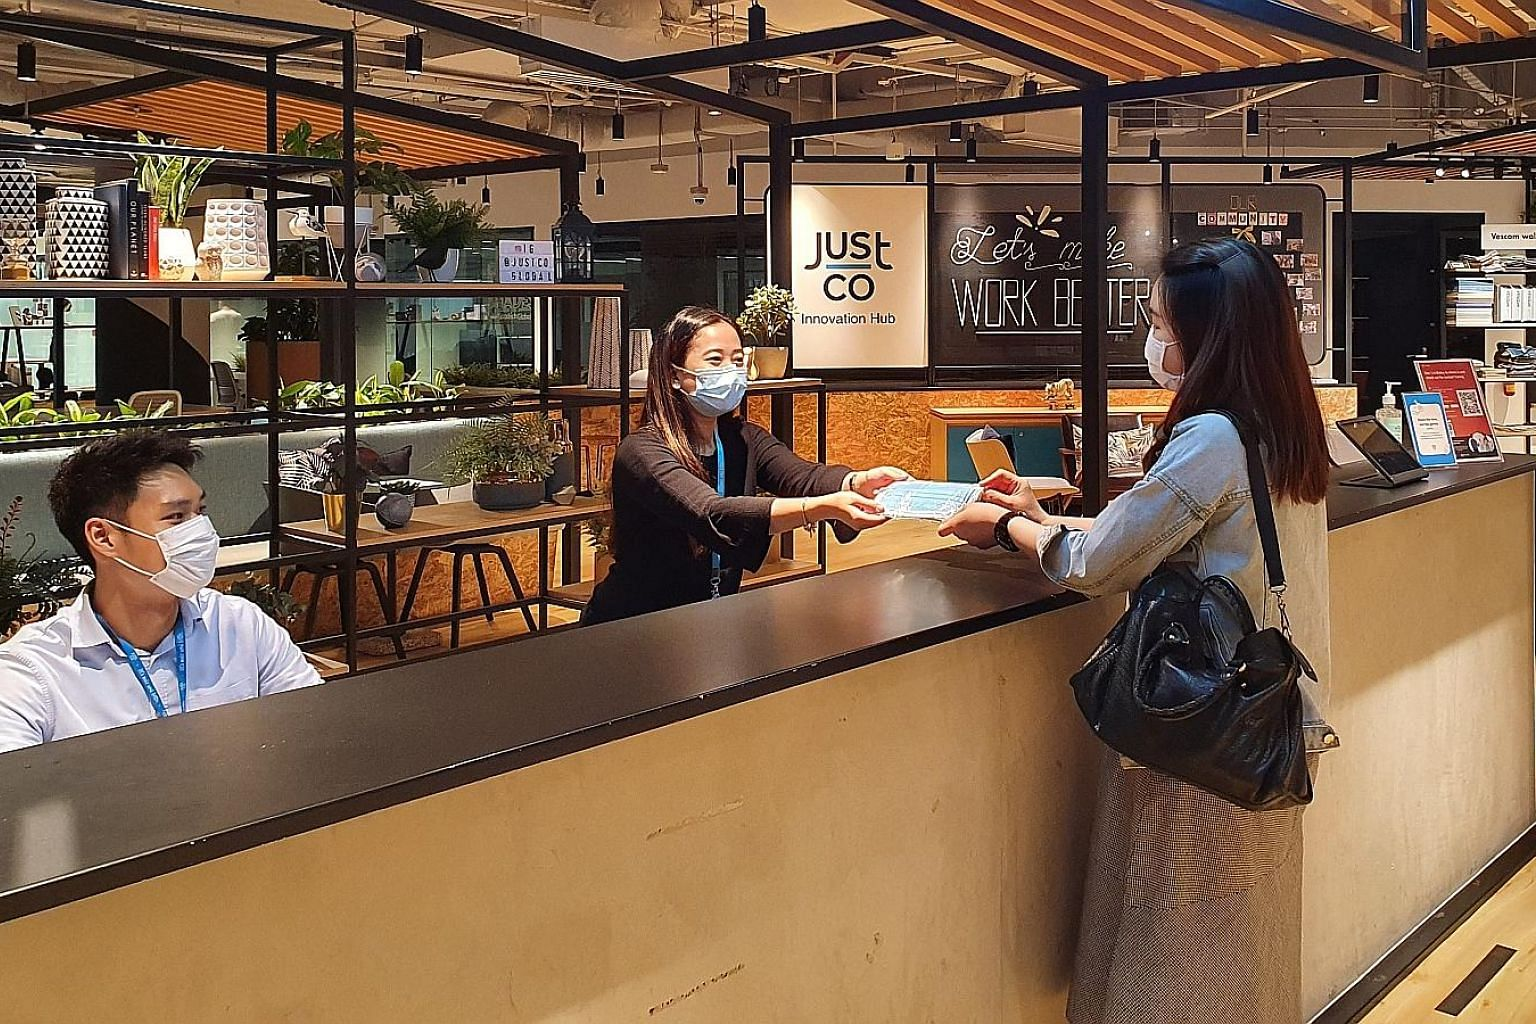 The JustCo co-working space at Marina Square. The local operator, which has 17 co-working spaces here, is opening two new centres - at OCBC Centre East and The Centrepoint this month and in October, respectively. The launch was delayed due to the pan